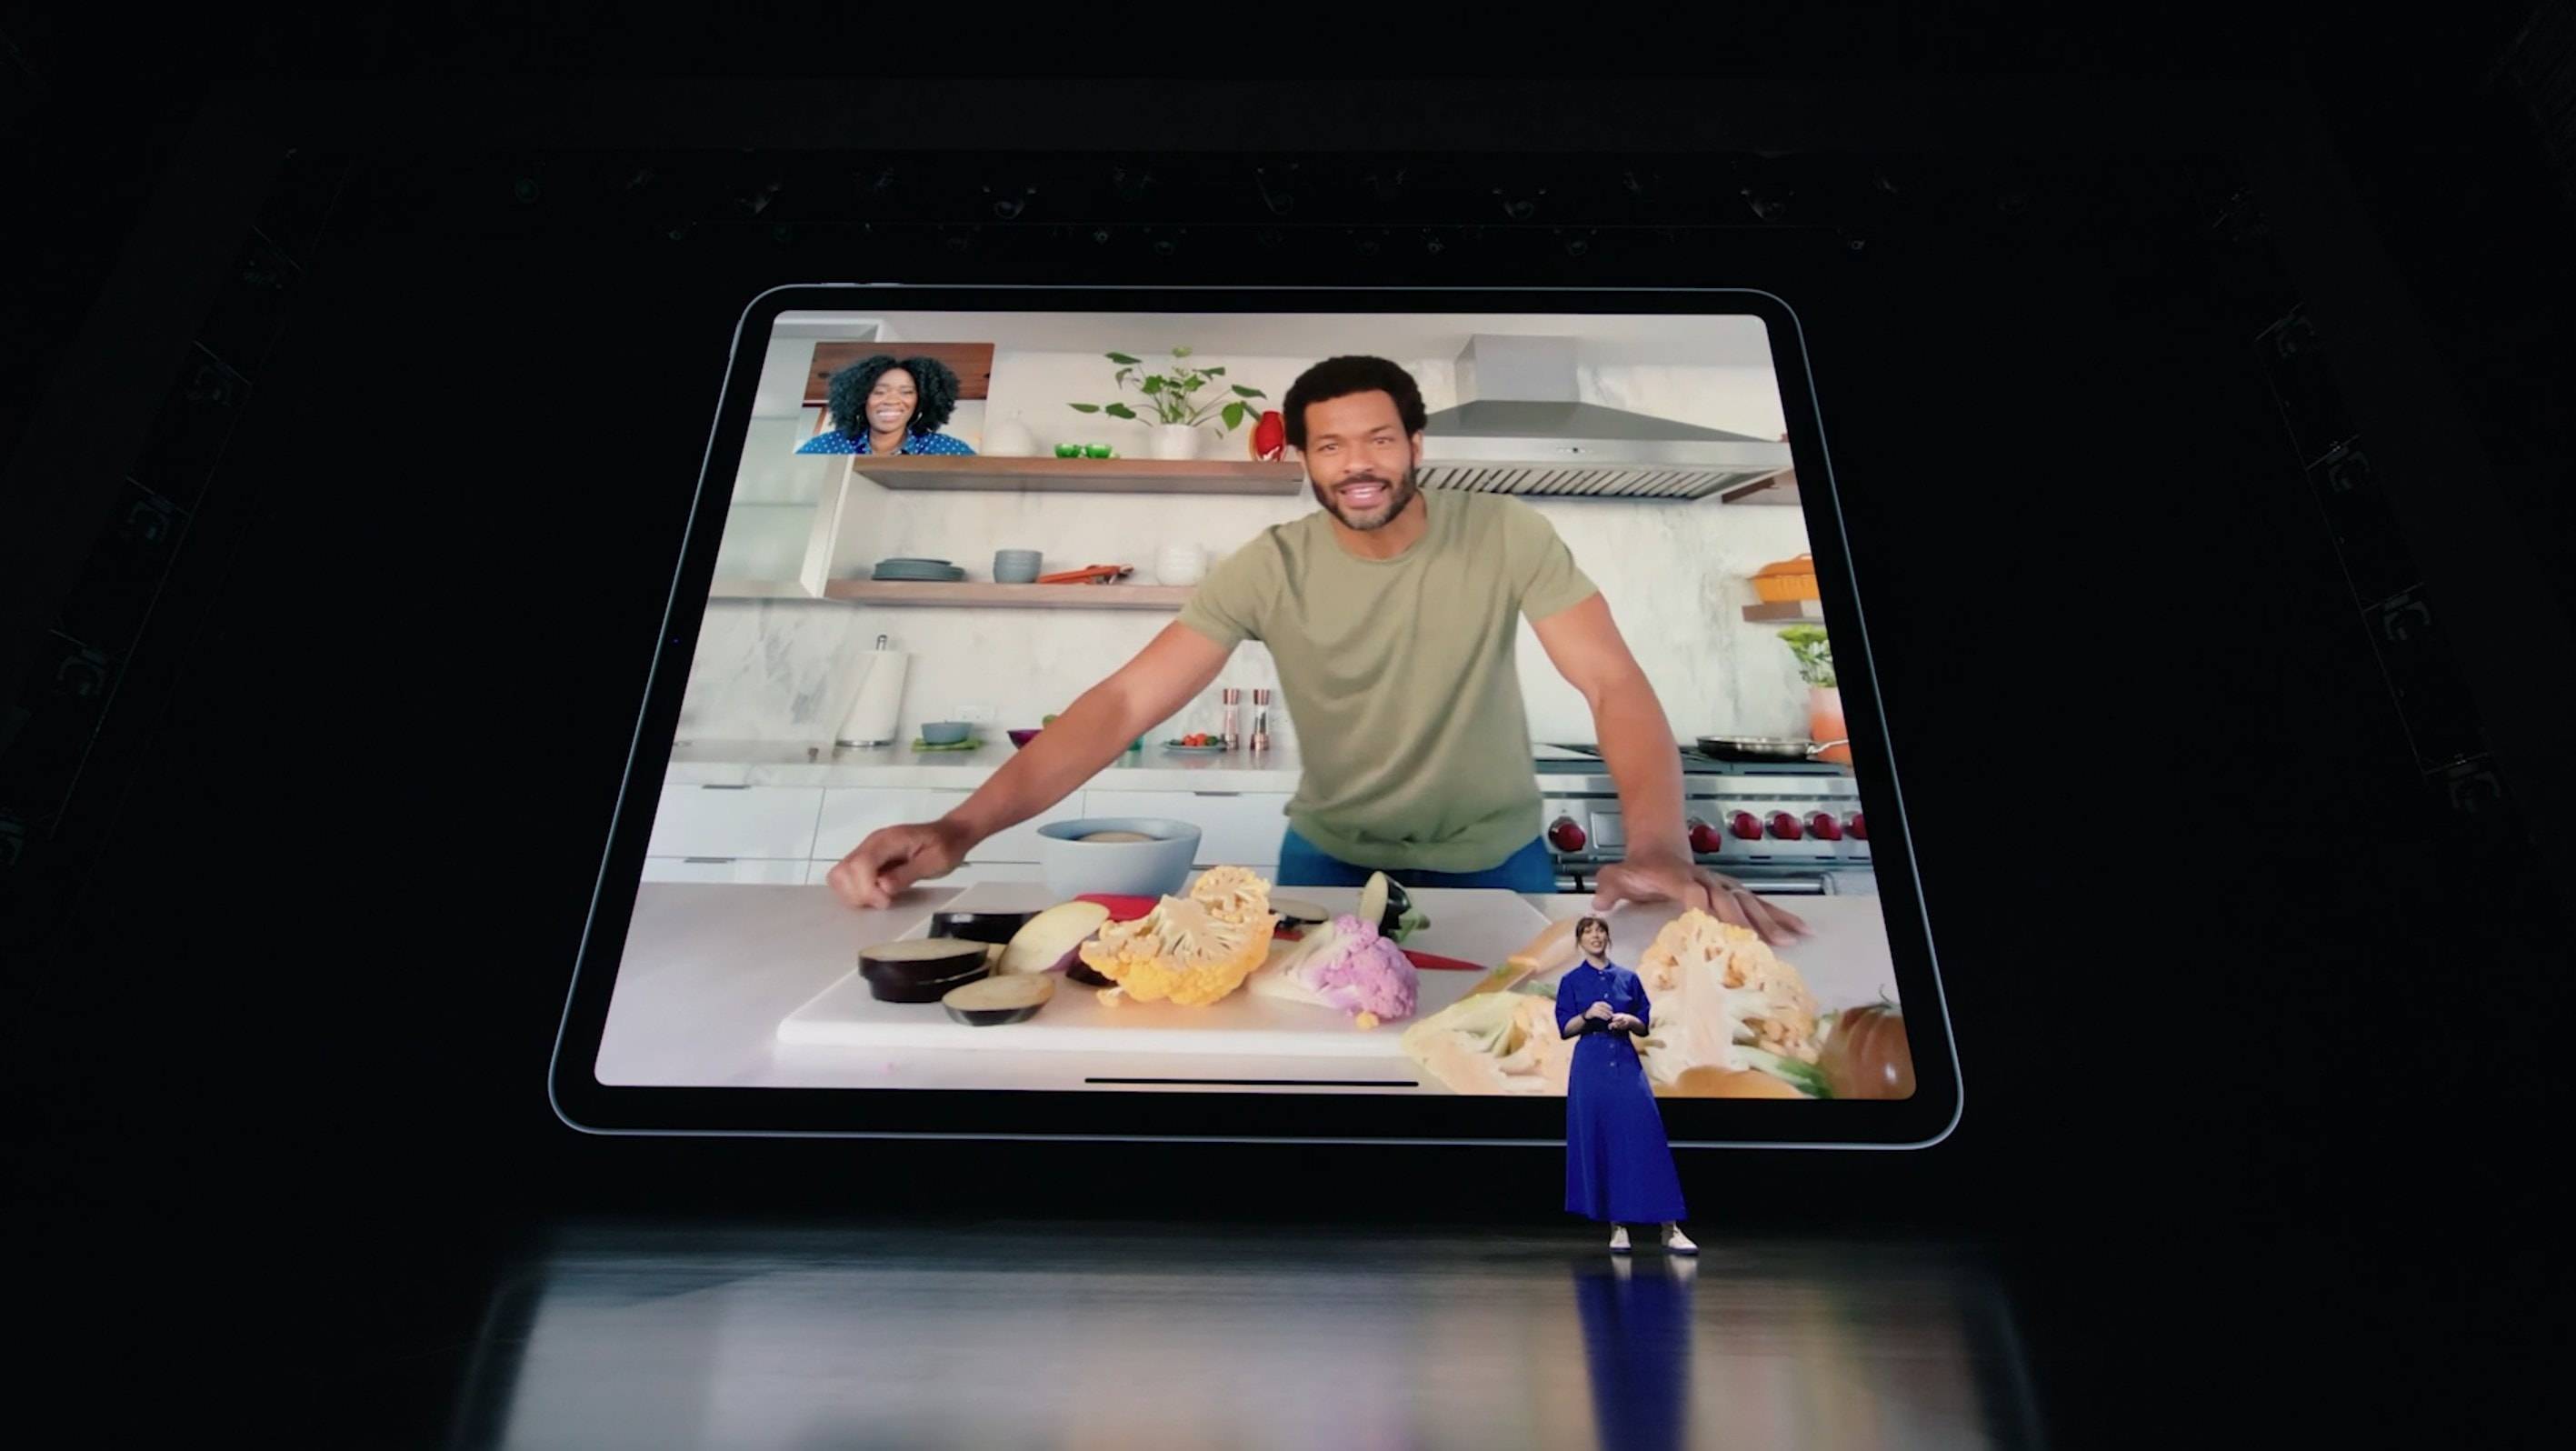 The new iPad Pro's 12MP ultra-wide camera allows a Center Stage feature that follows you around the room during video calls.